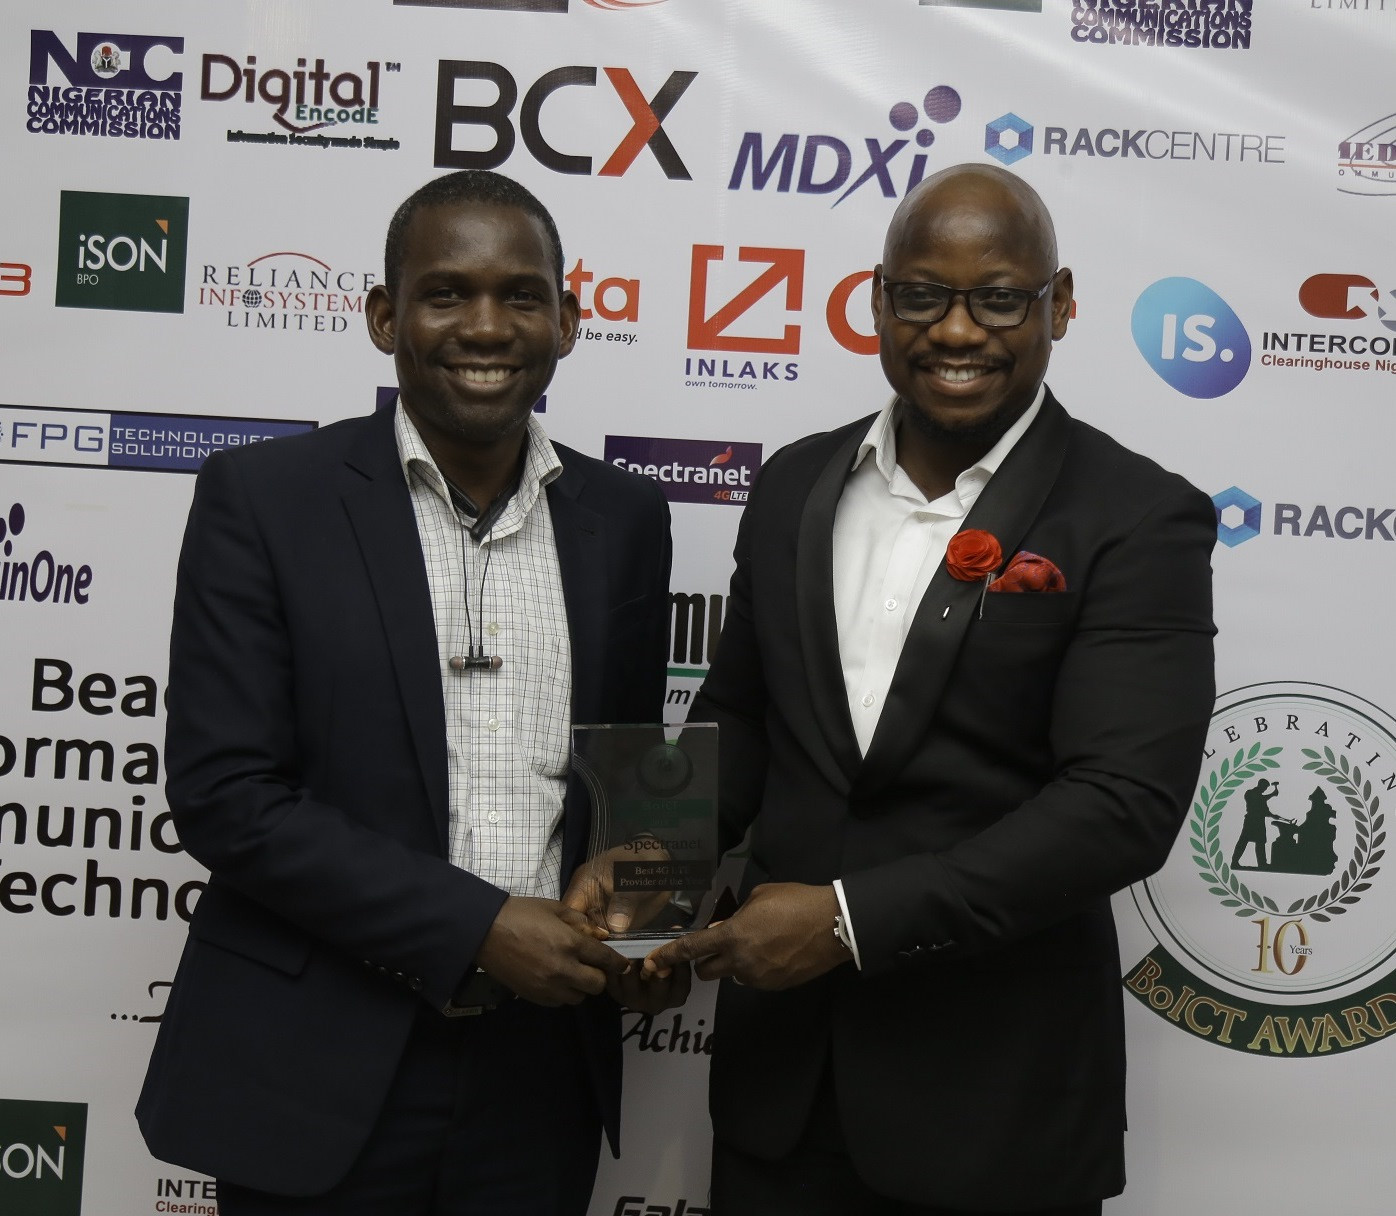 Spectranet Gets Best 4G LTE Recognition at BoICT Awards